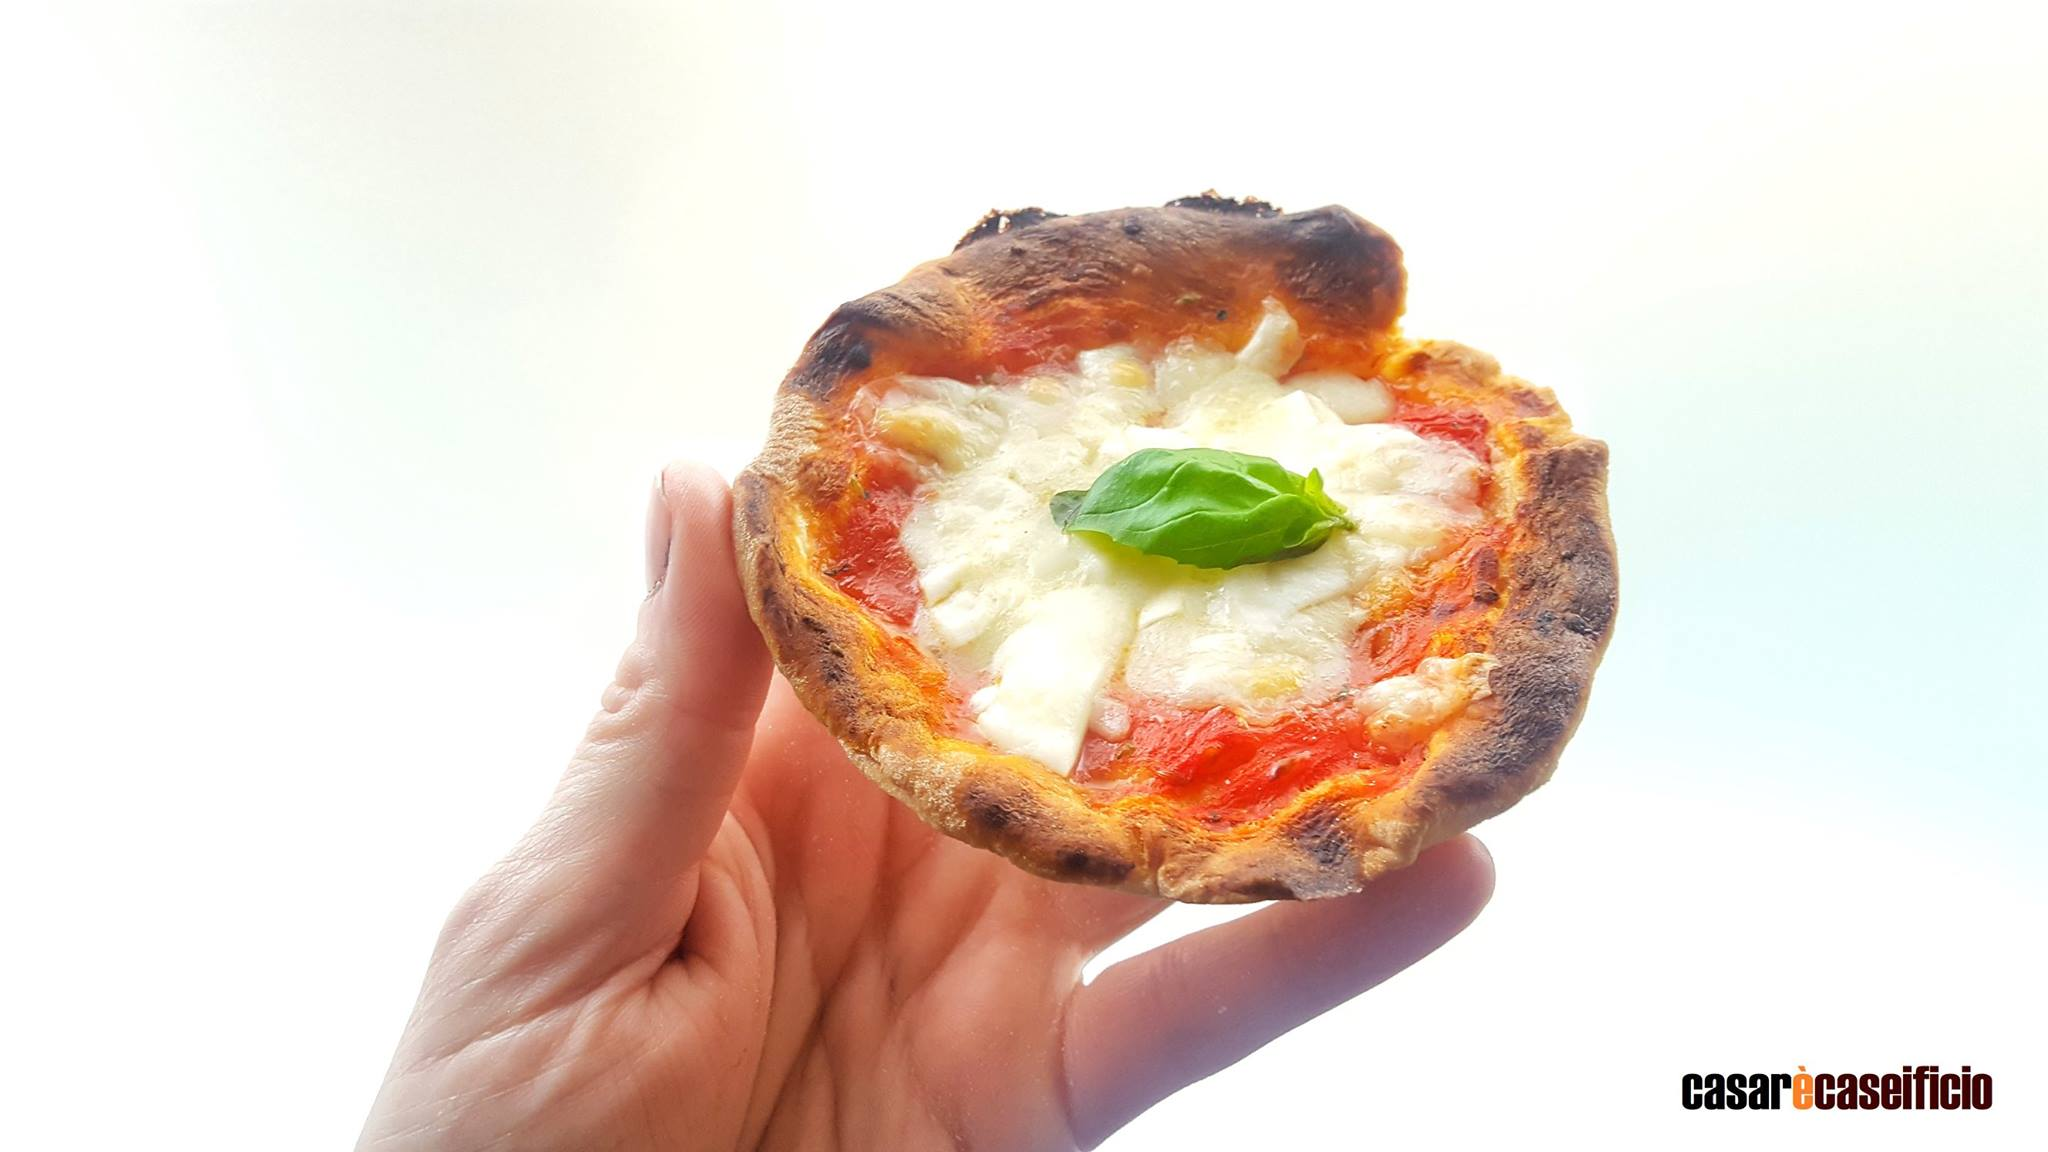 La pizza è patrimonio dell'Unesco!